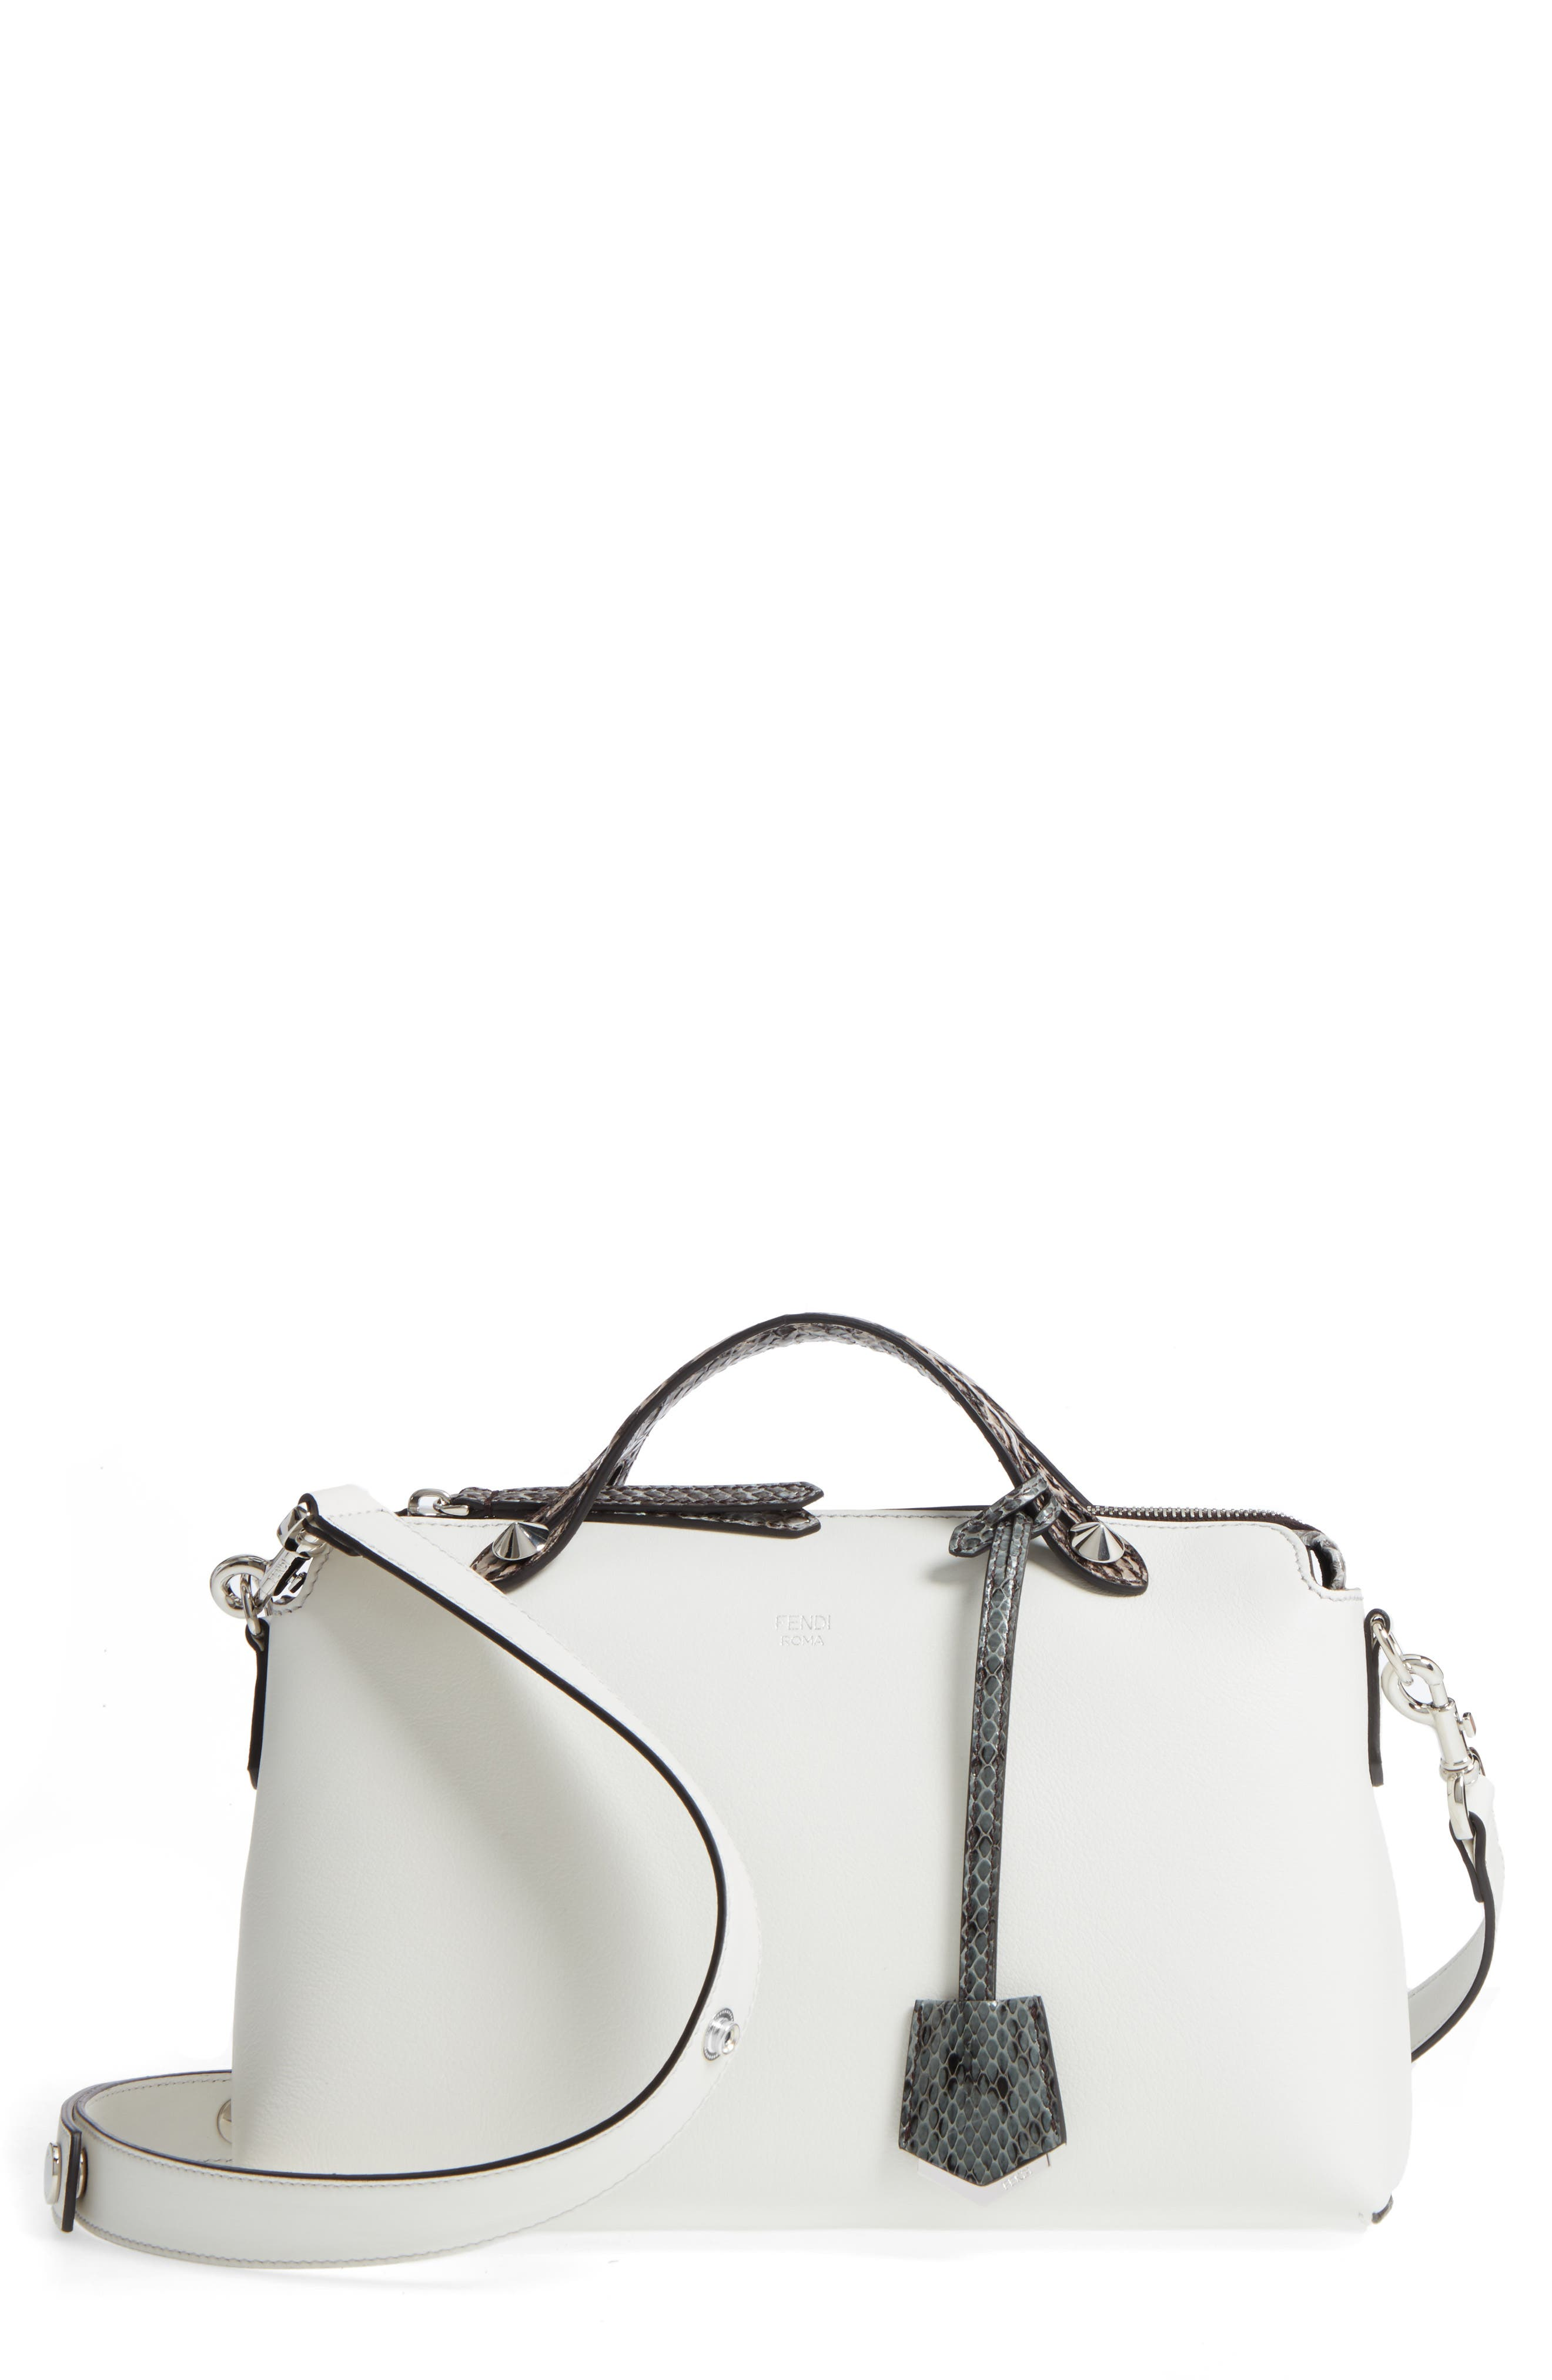 'Medium By the Way' Calfskin Leather Shoulder Bag with Genuine Snakeskin Trim,                             Main thumbnail 1, color,                             Ice